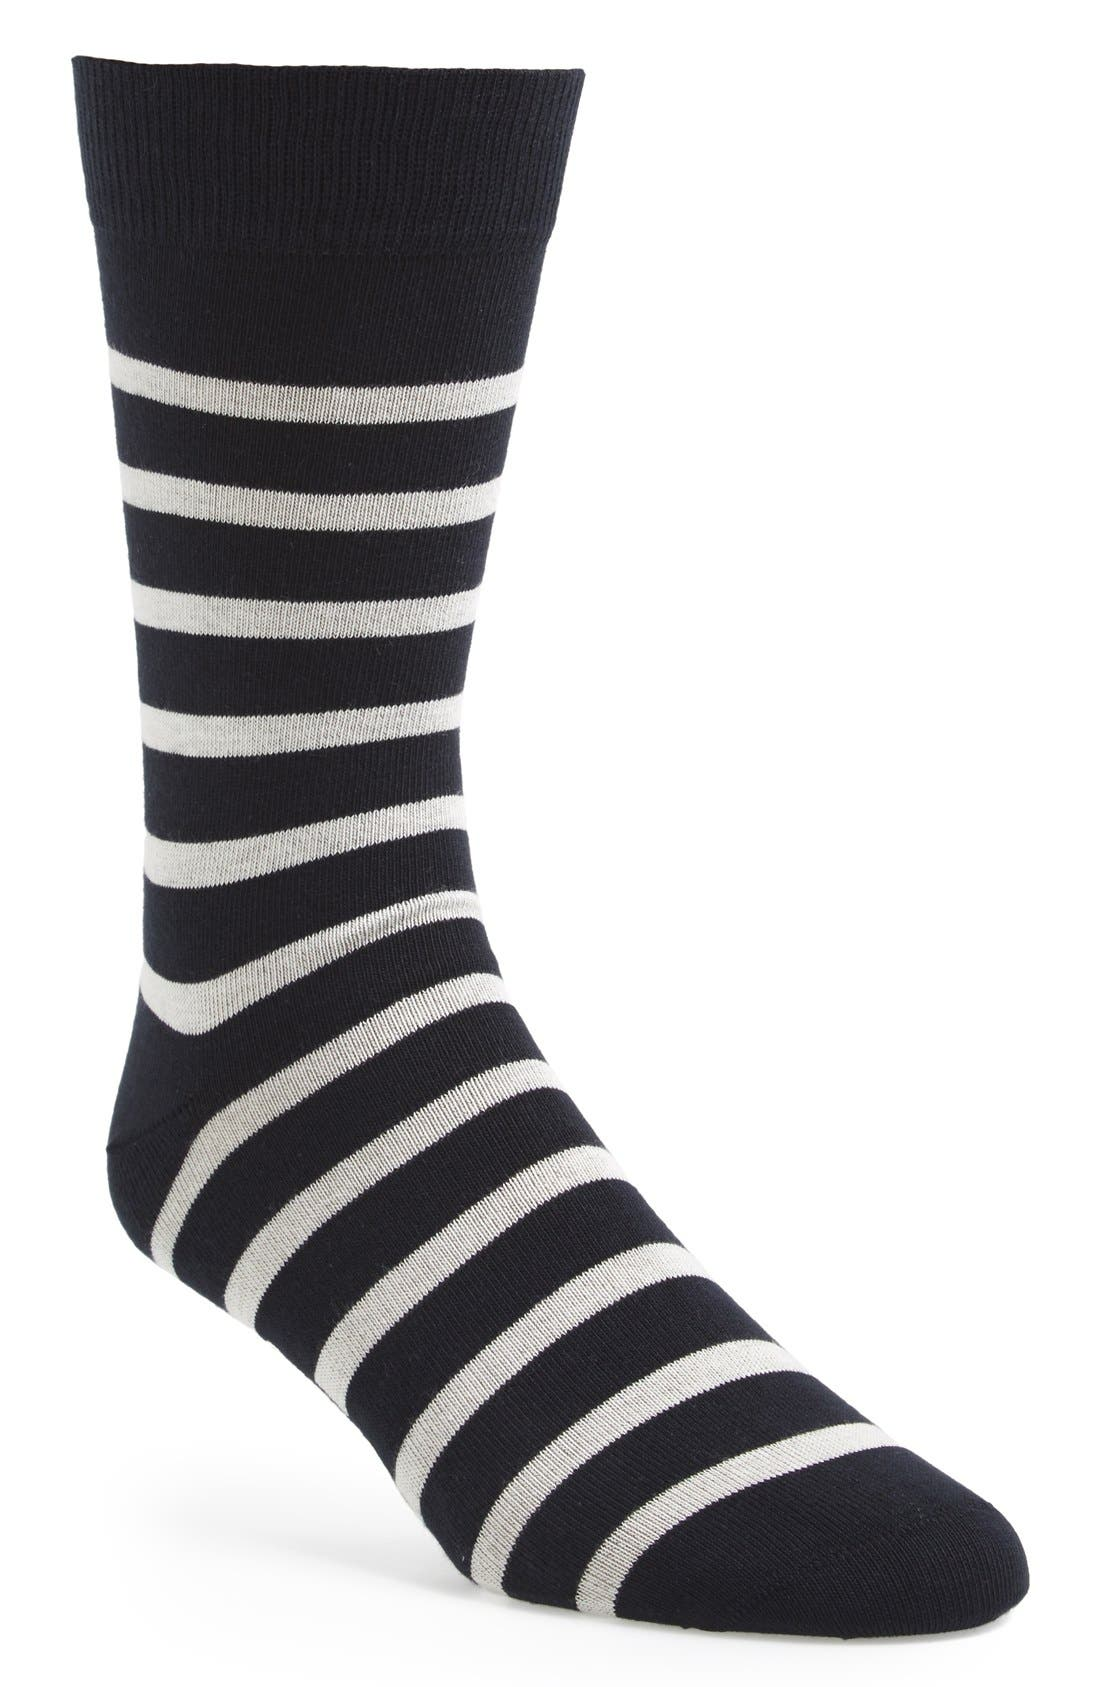 'Pieds Rayes A' Striped Socks,                             Main thumbnail 6, color,